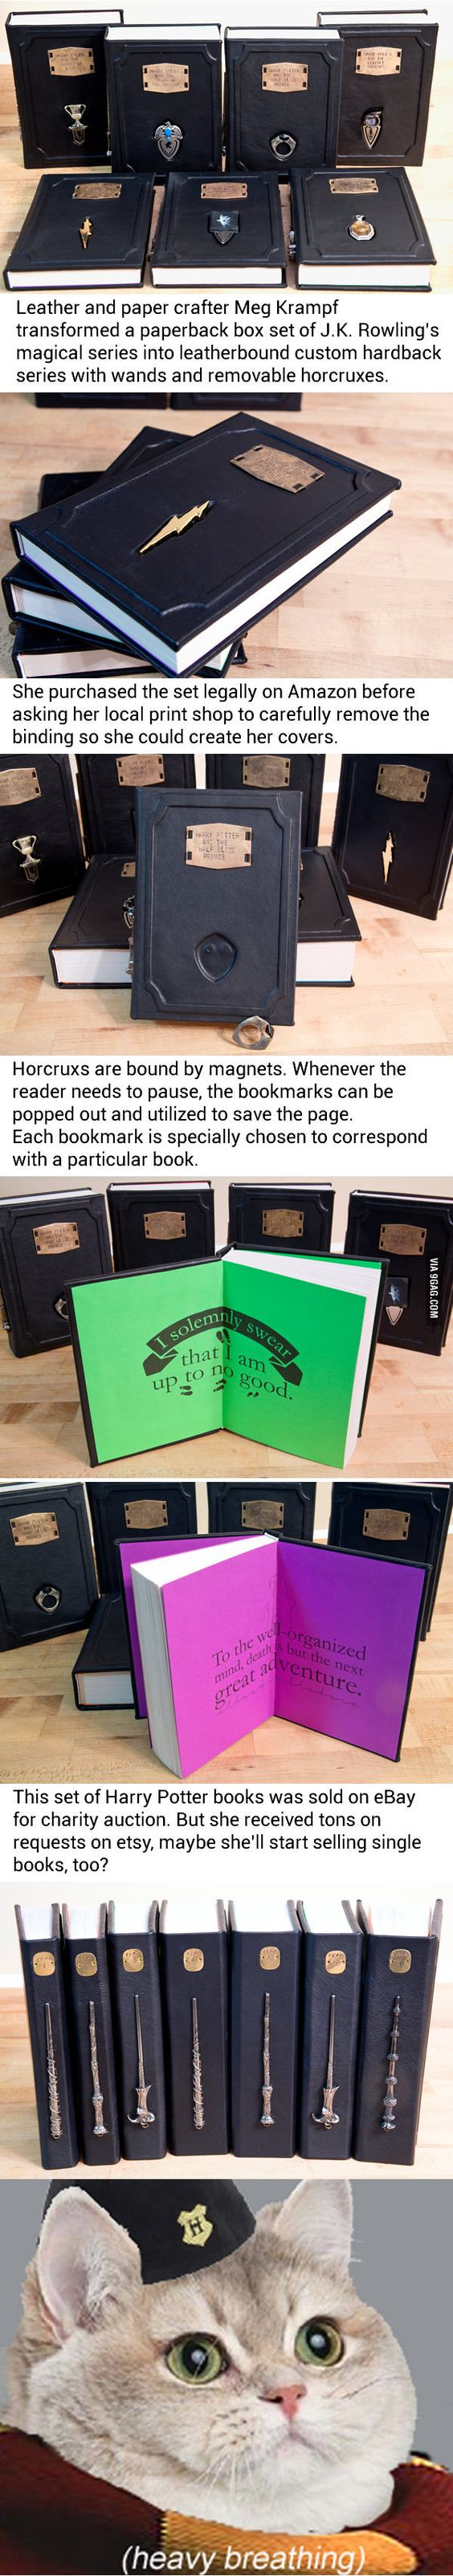 How long does it take to get my book bound?